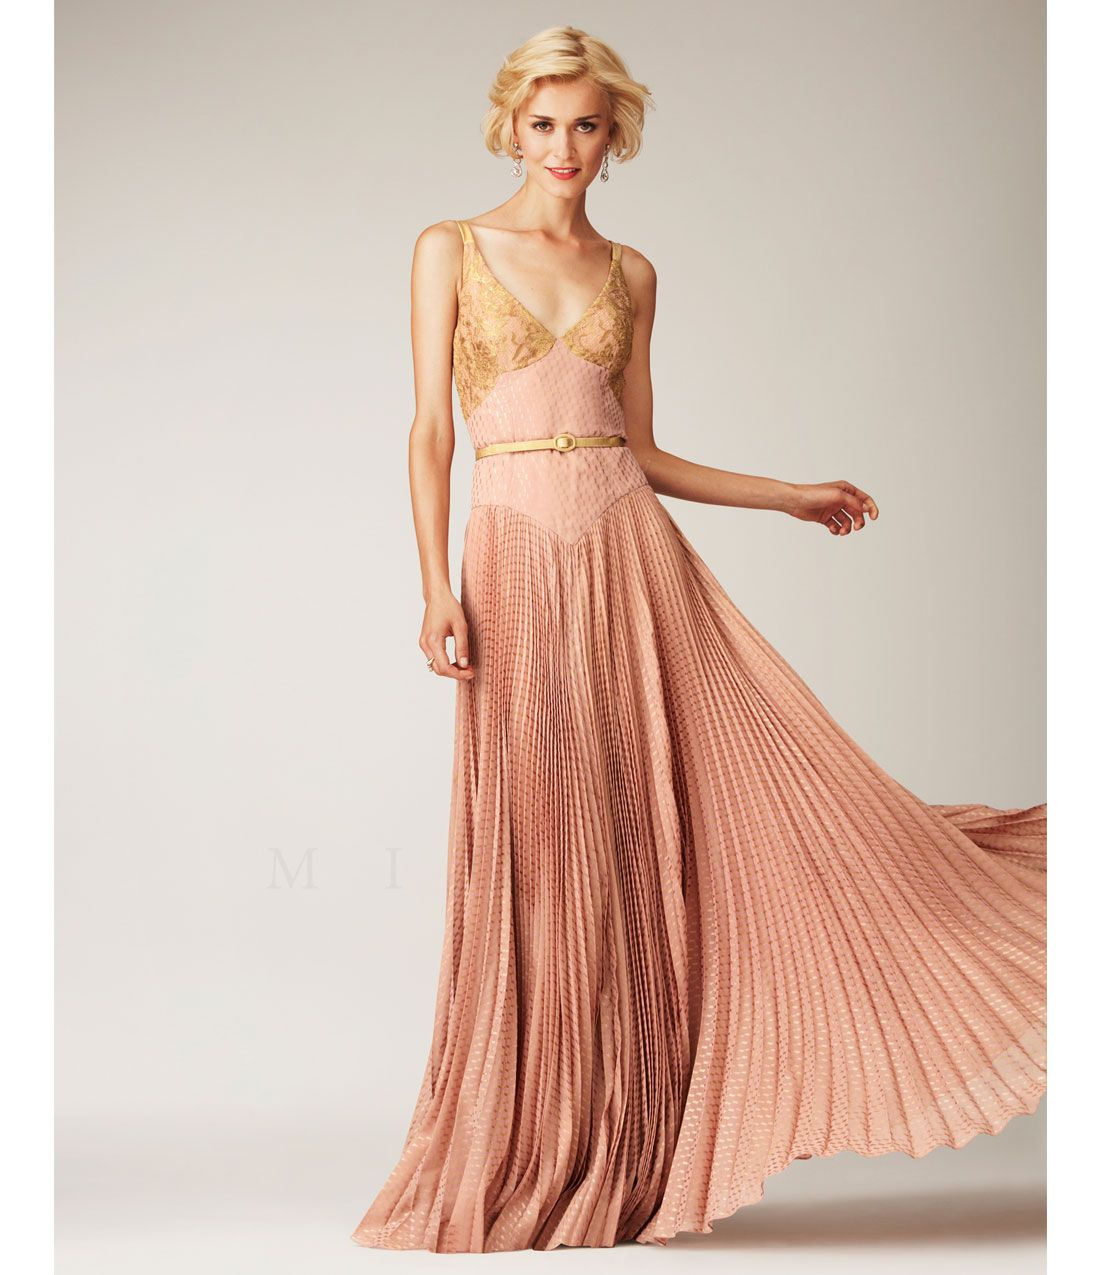 Wedding Rose Gold Dresses 168 stop staring 1930s style navy ivory railene dress rose gold